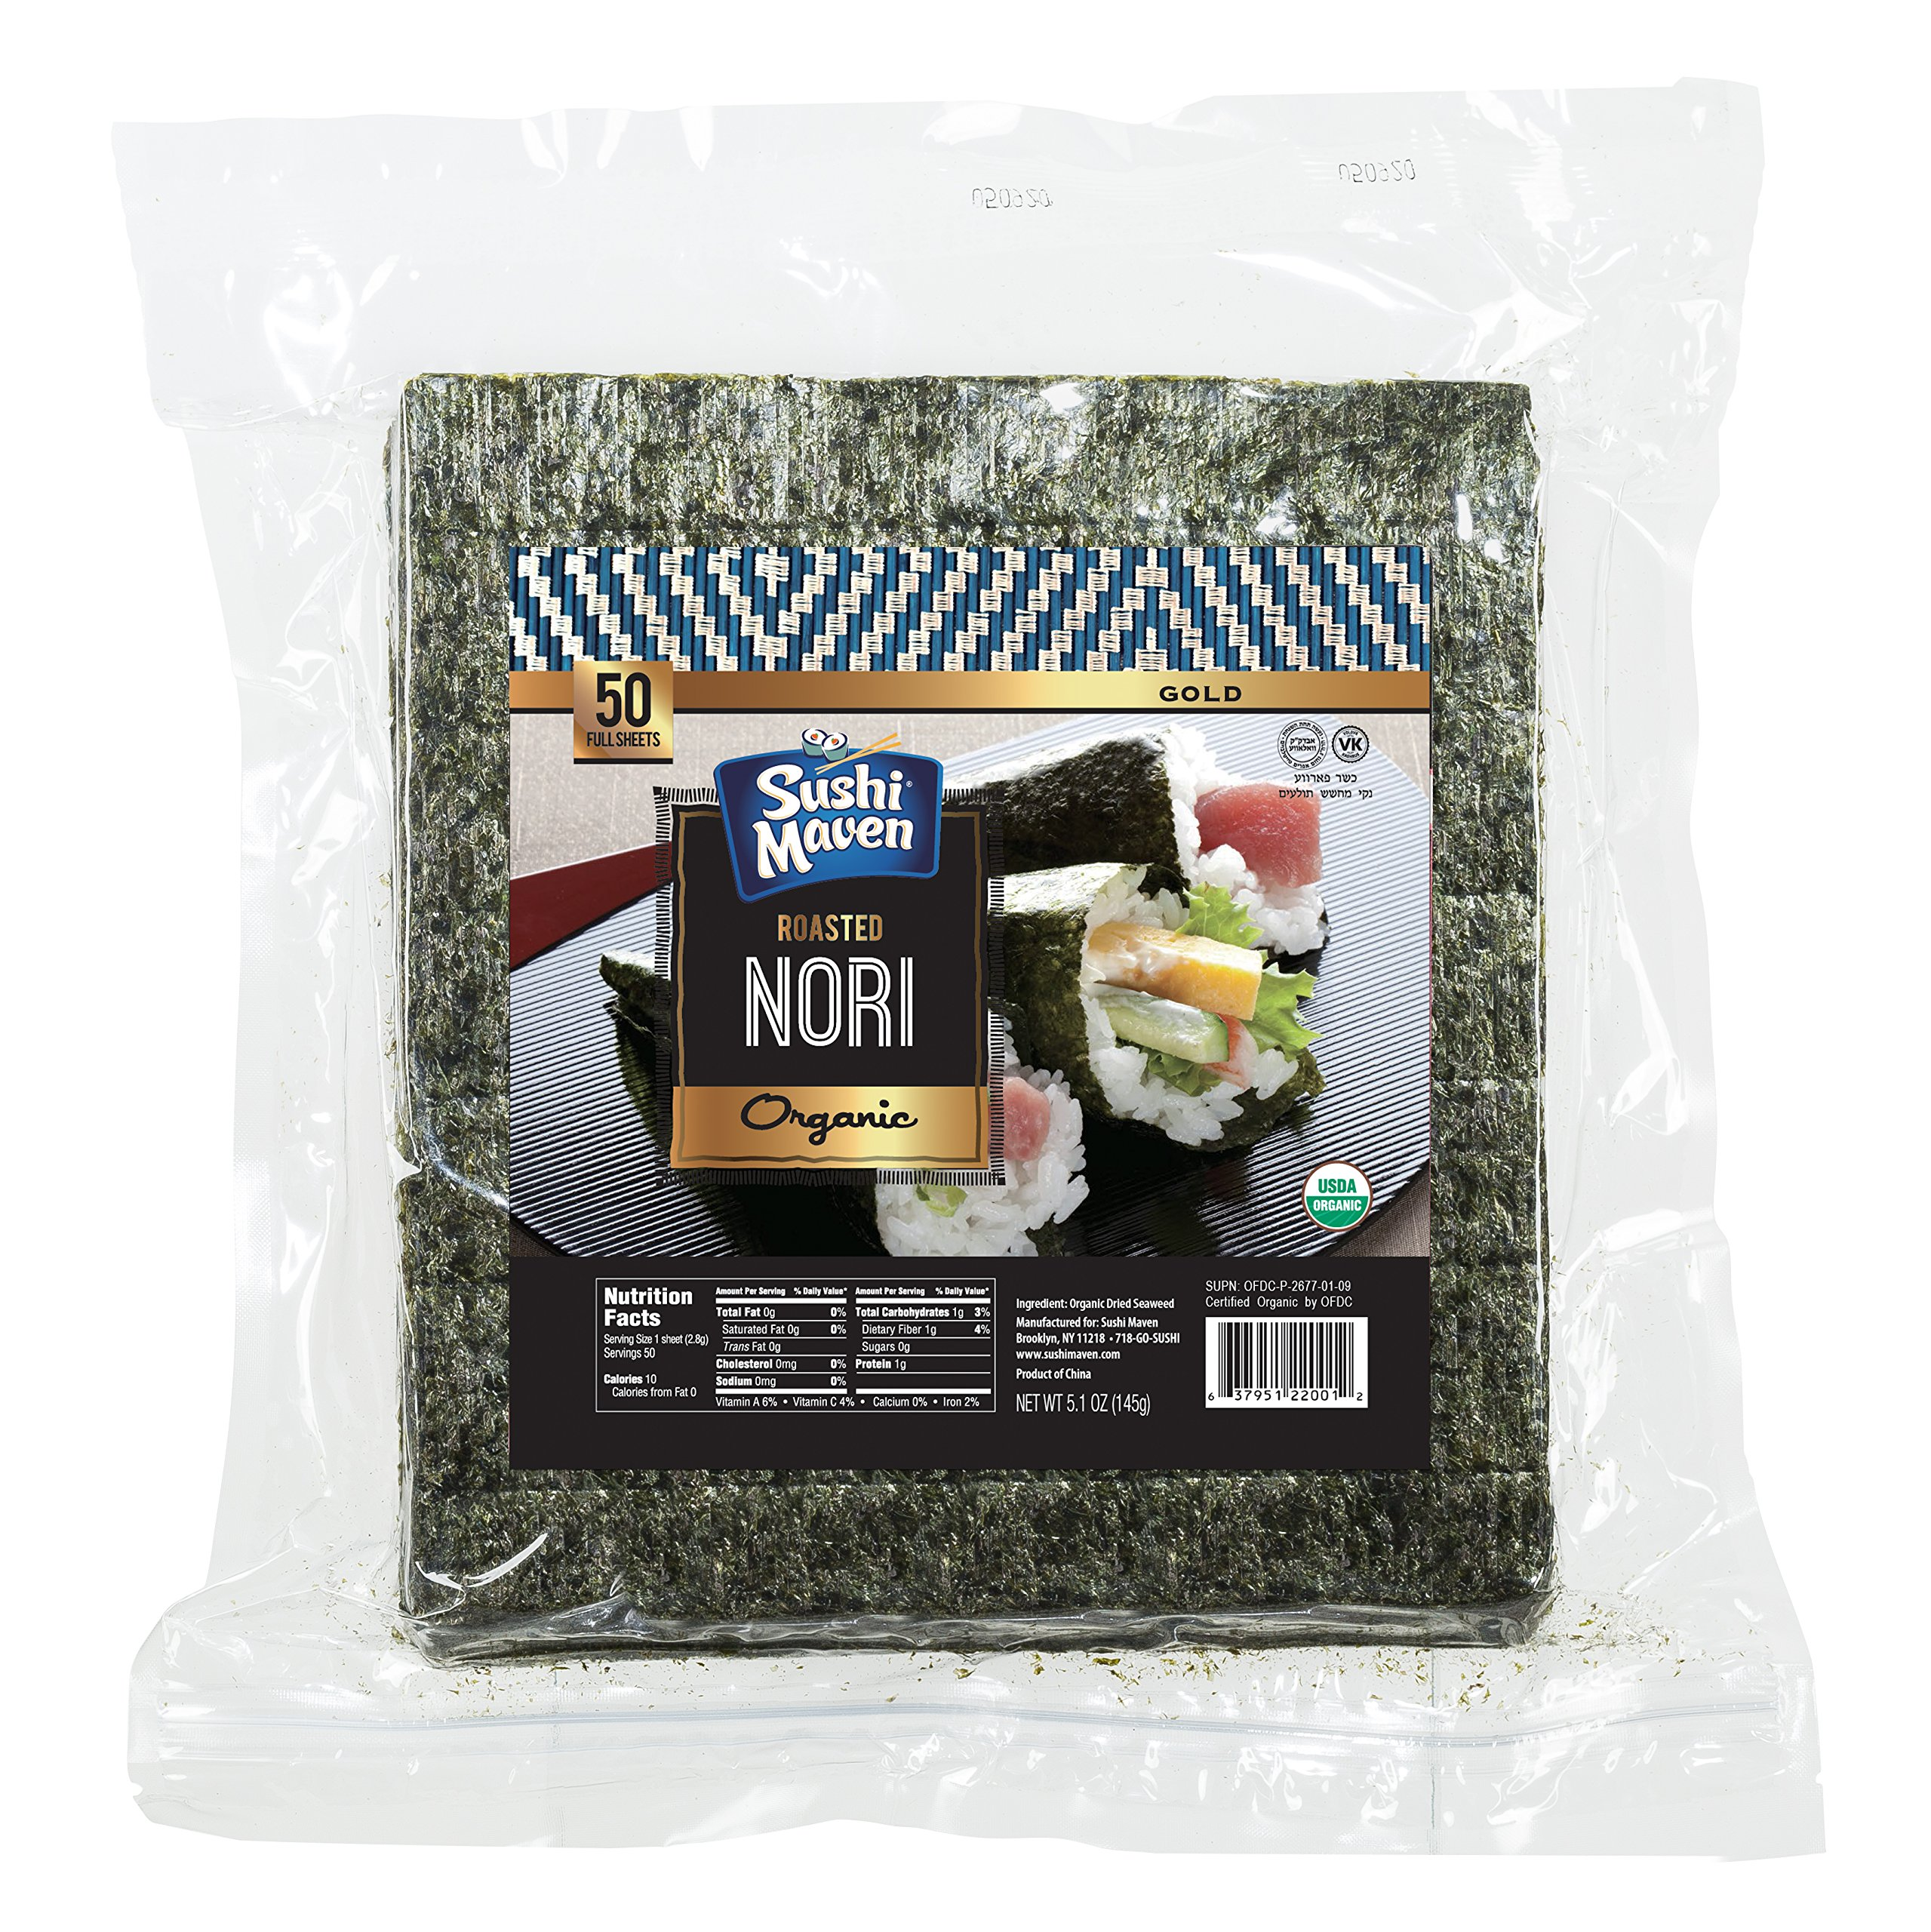 SUSHI MAVEN Nori Sheets- Pack of 50 Seaweed Sheets- Organic Nori Sheets for Asian Dishes- Premium High-end Nori Sheets for Sushi and Rice Balls- Healthy Organic Asian Food by Sushi Maven